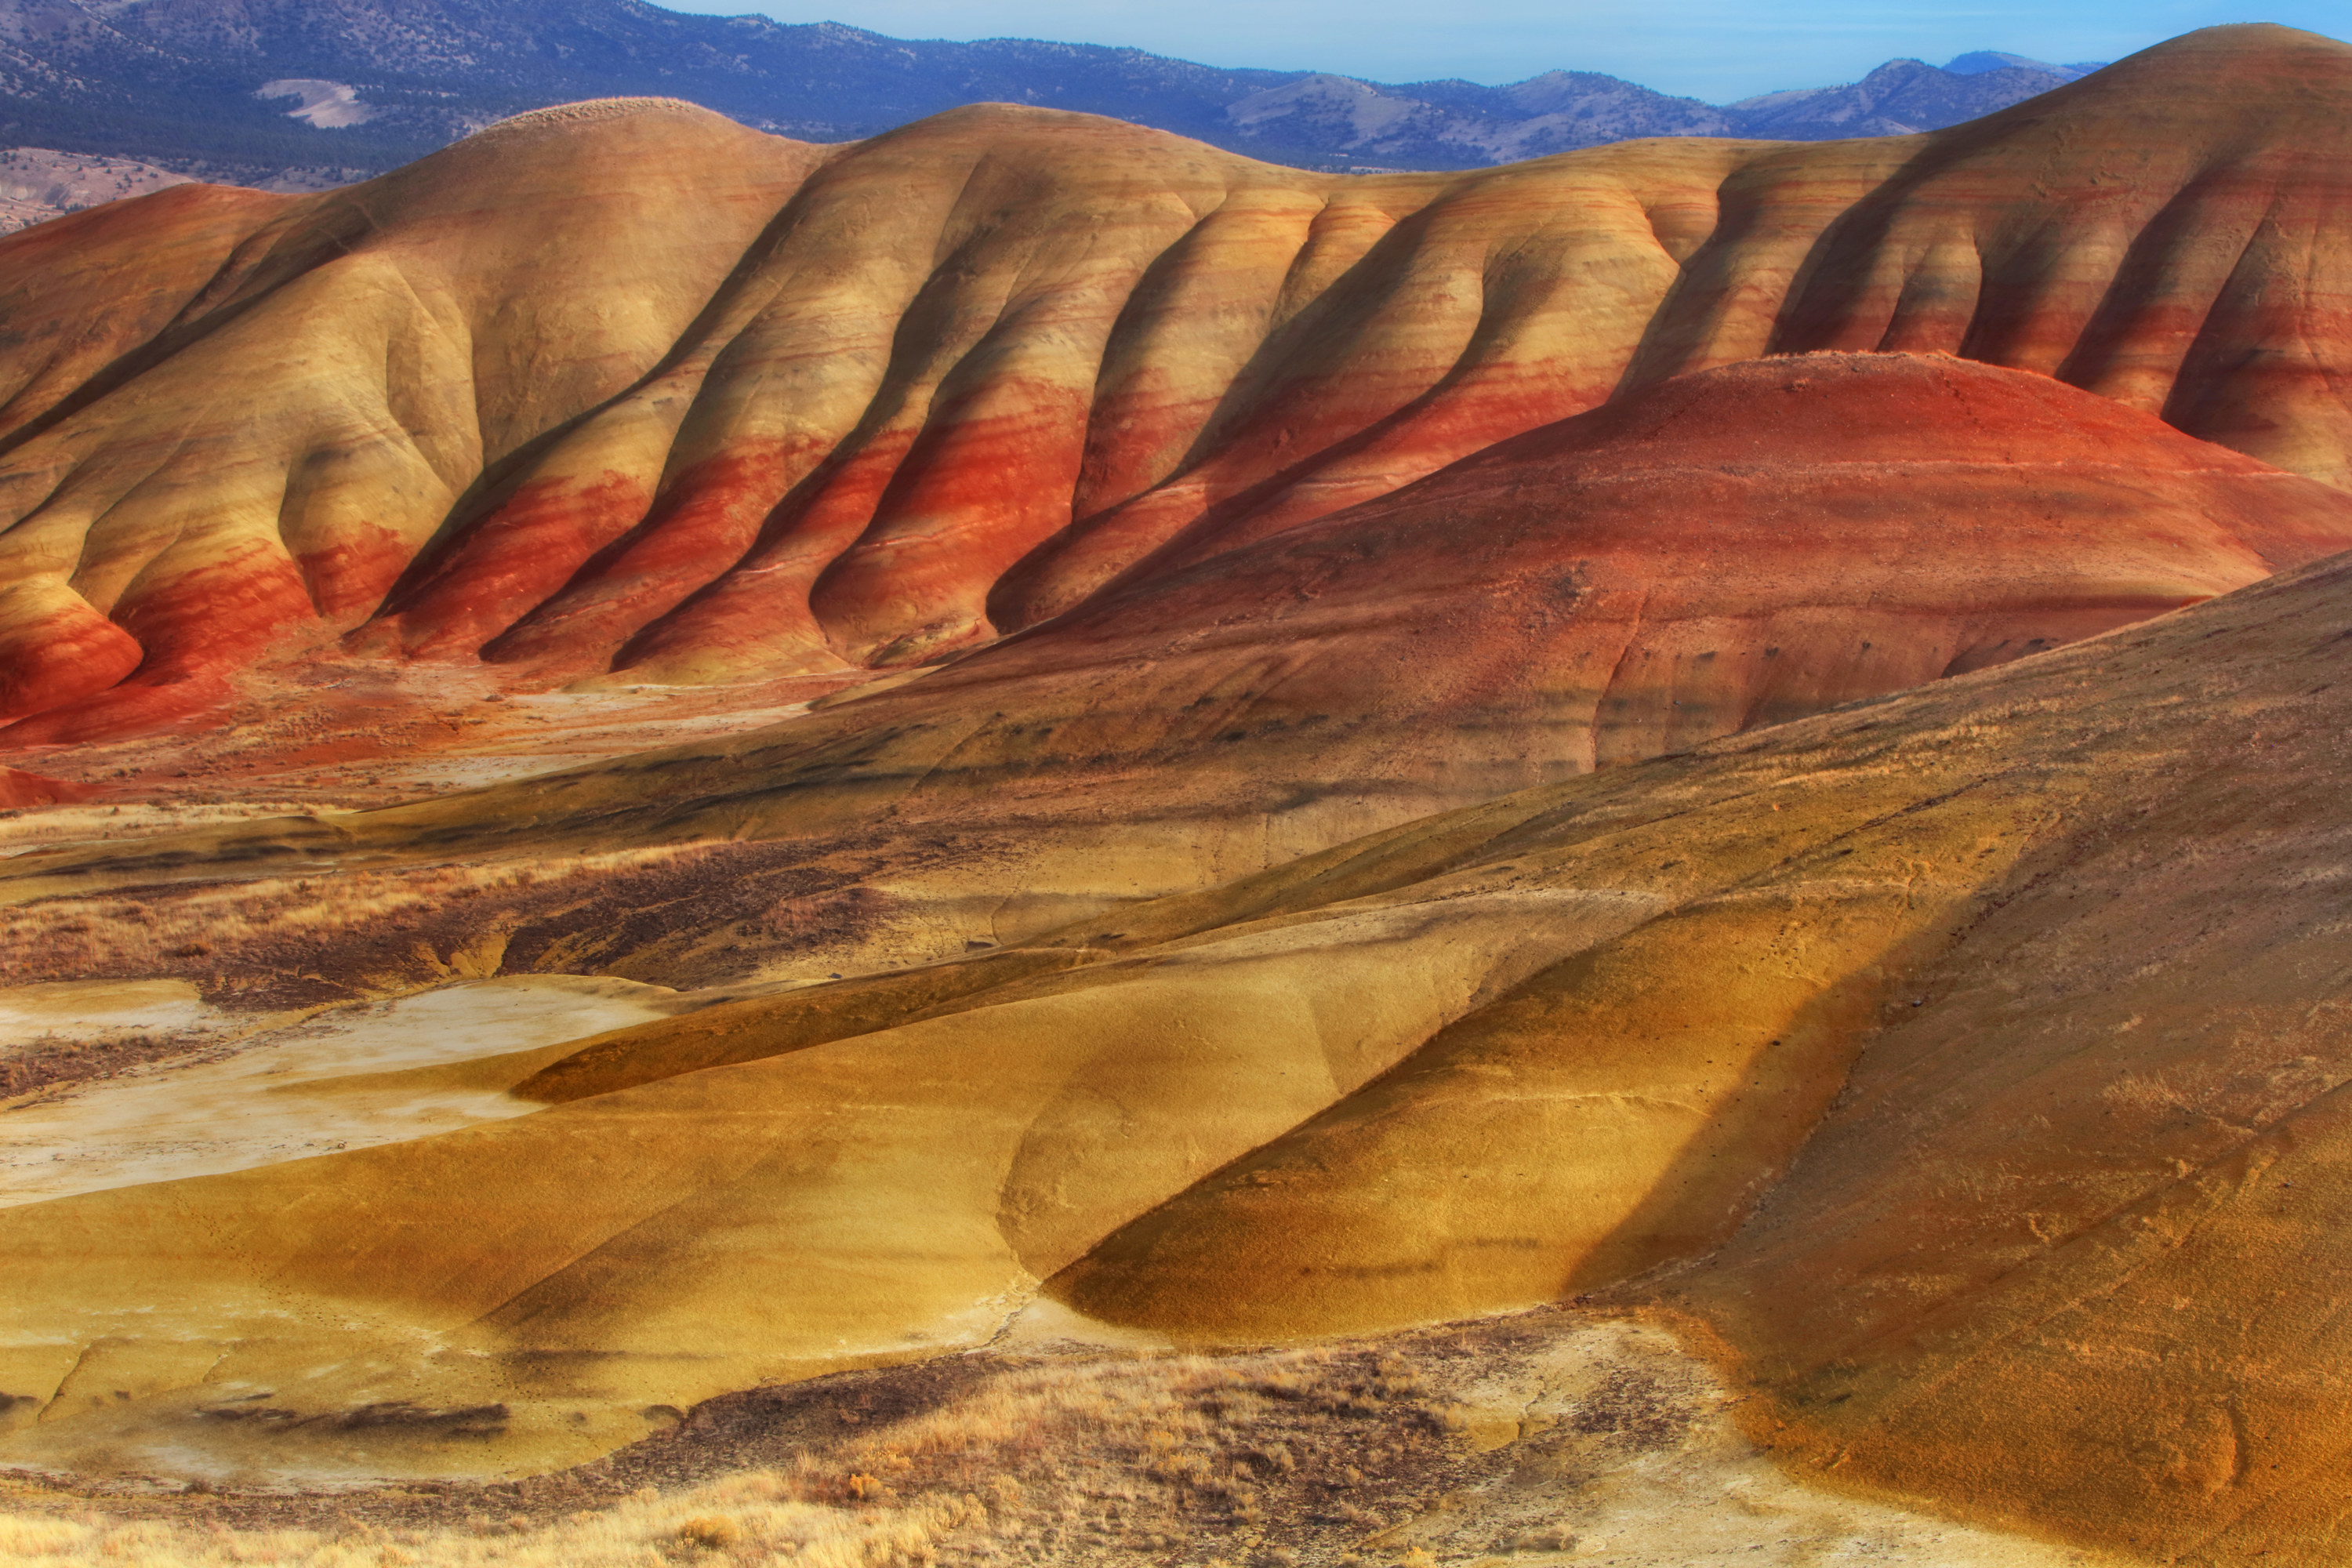 Voluptuous, curvy, indented mountains made up of multicolored sedimentary layers accentuate the John Day Fossil Beds.